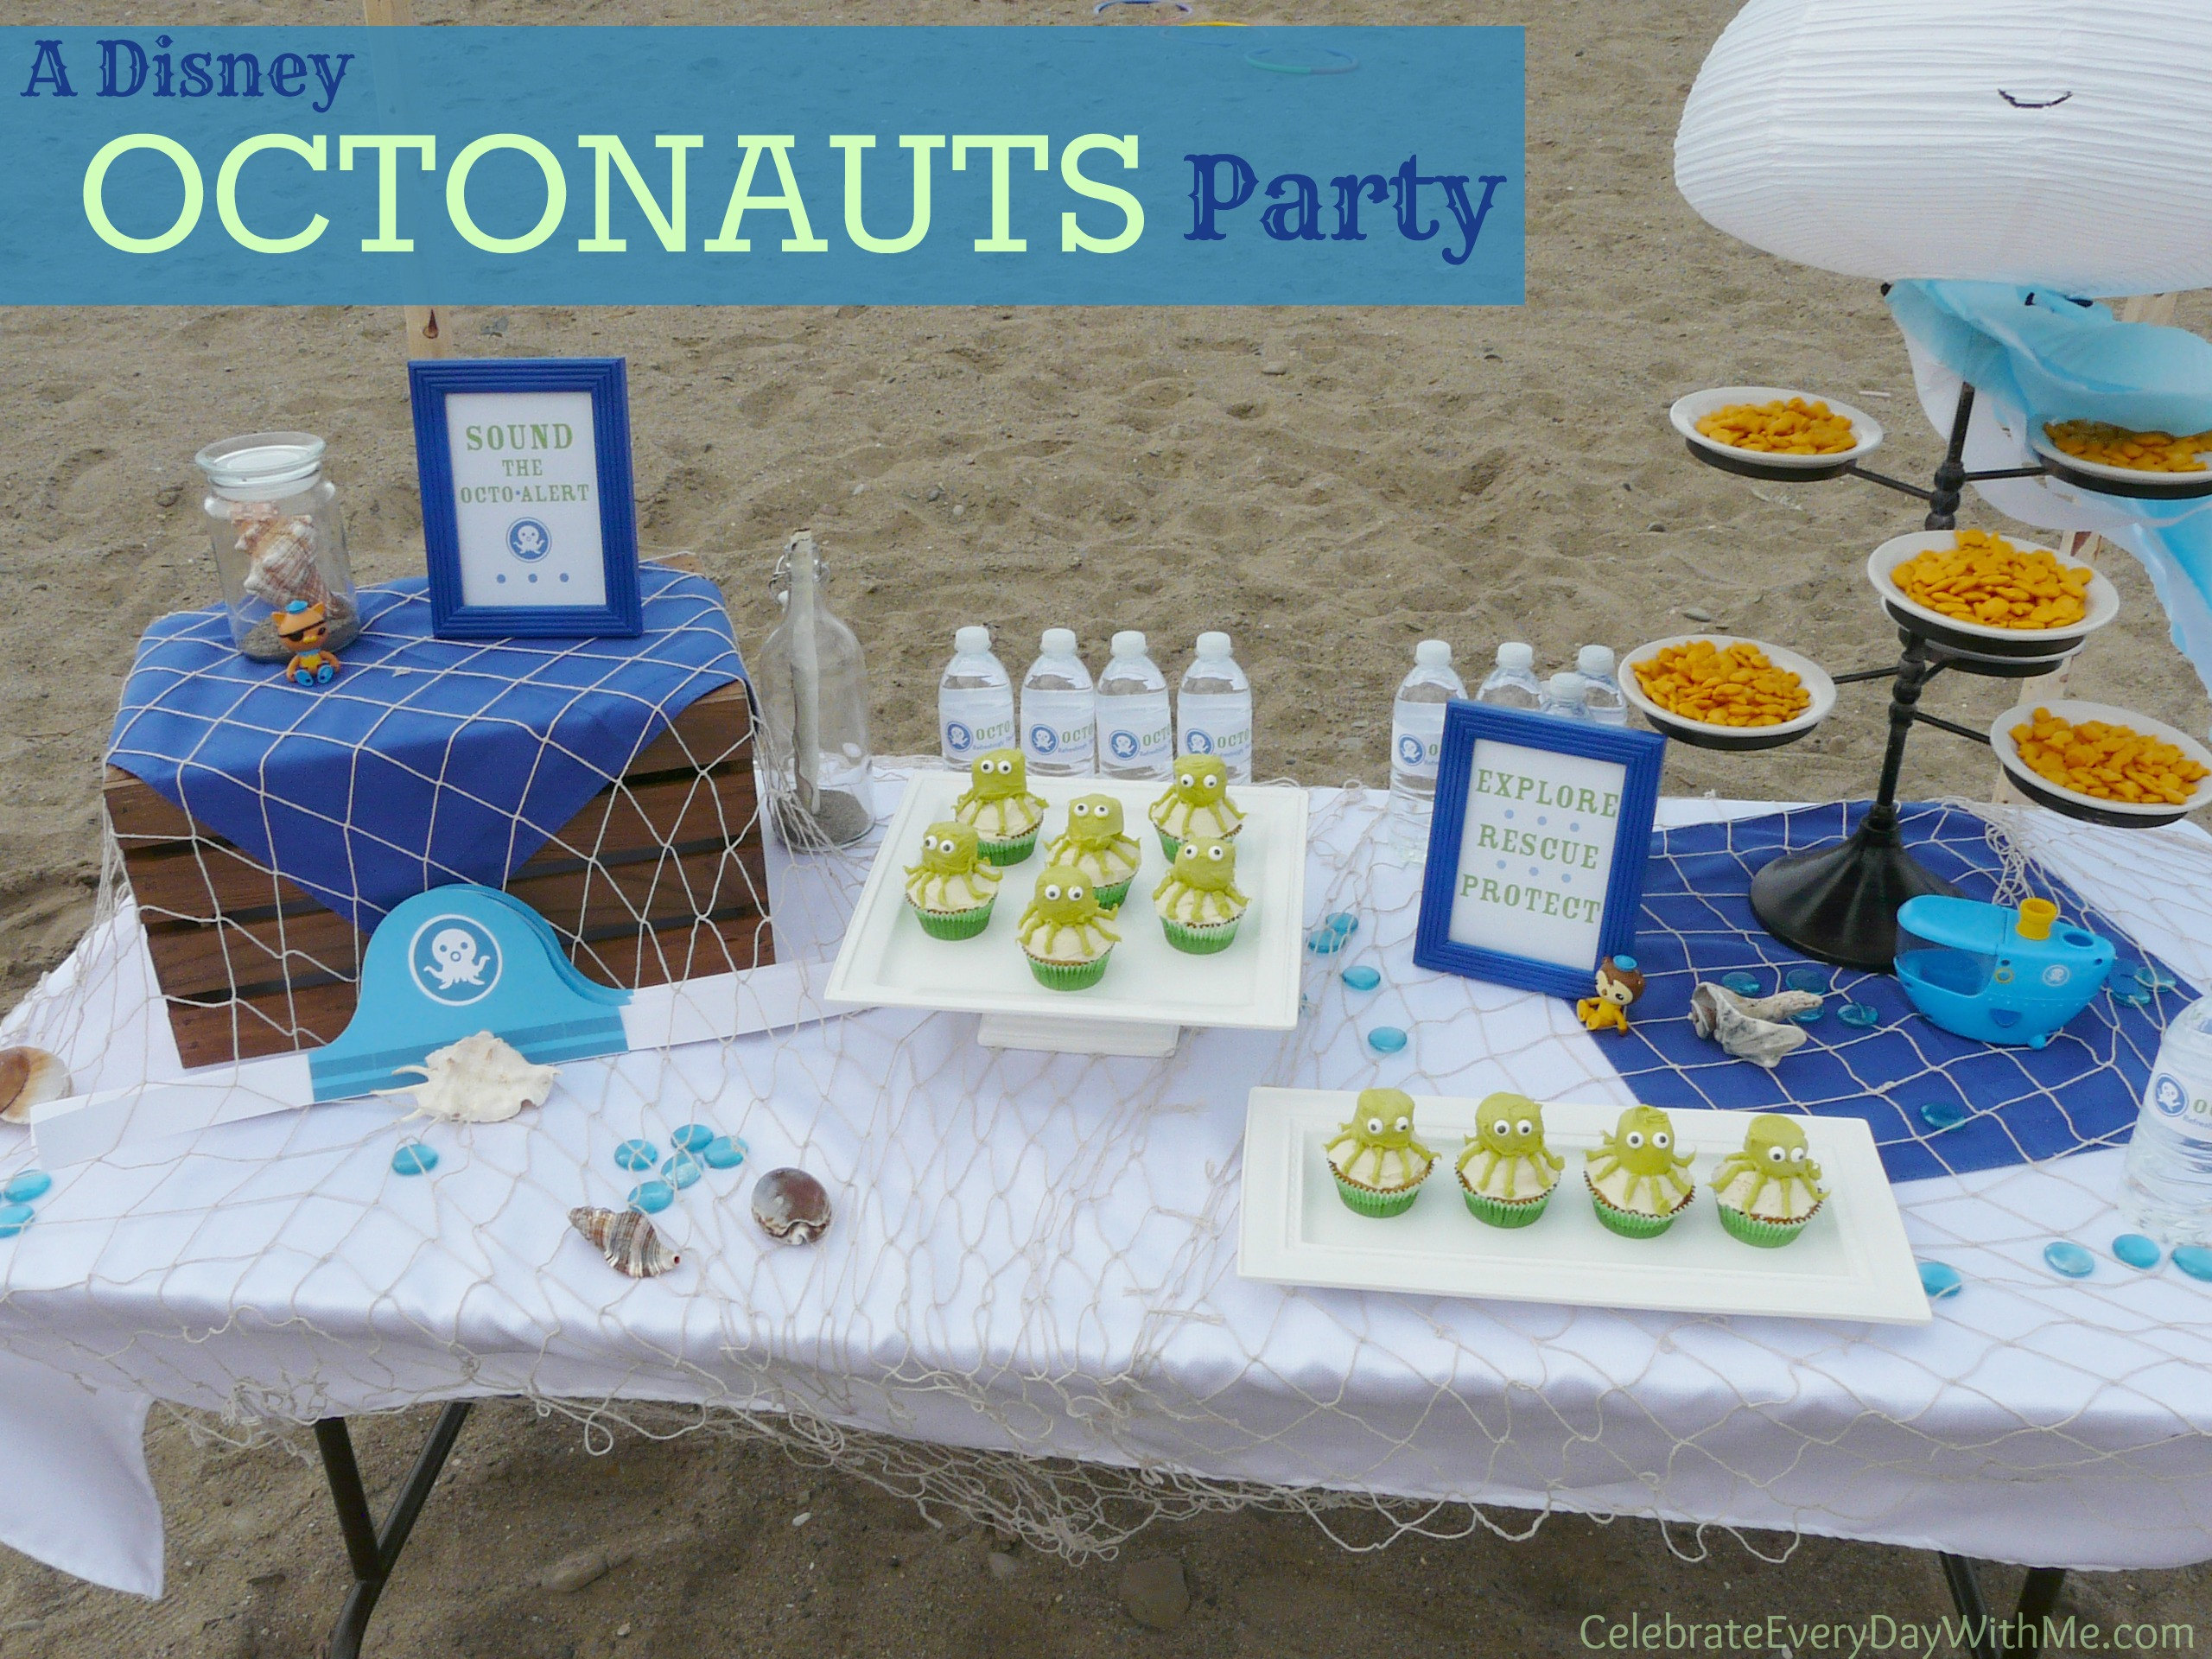 A Disney Octonauts Party